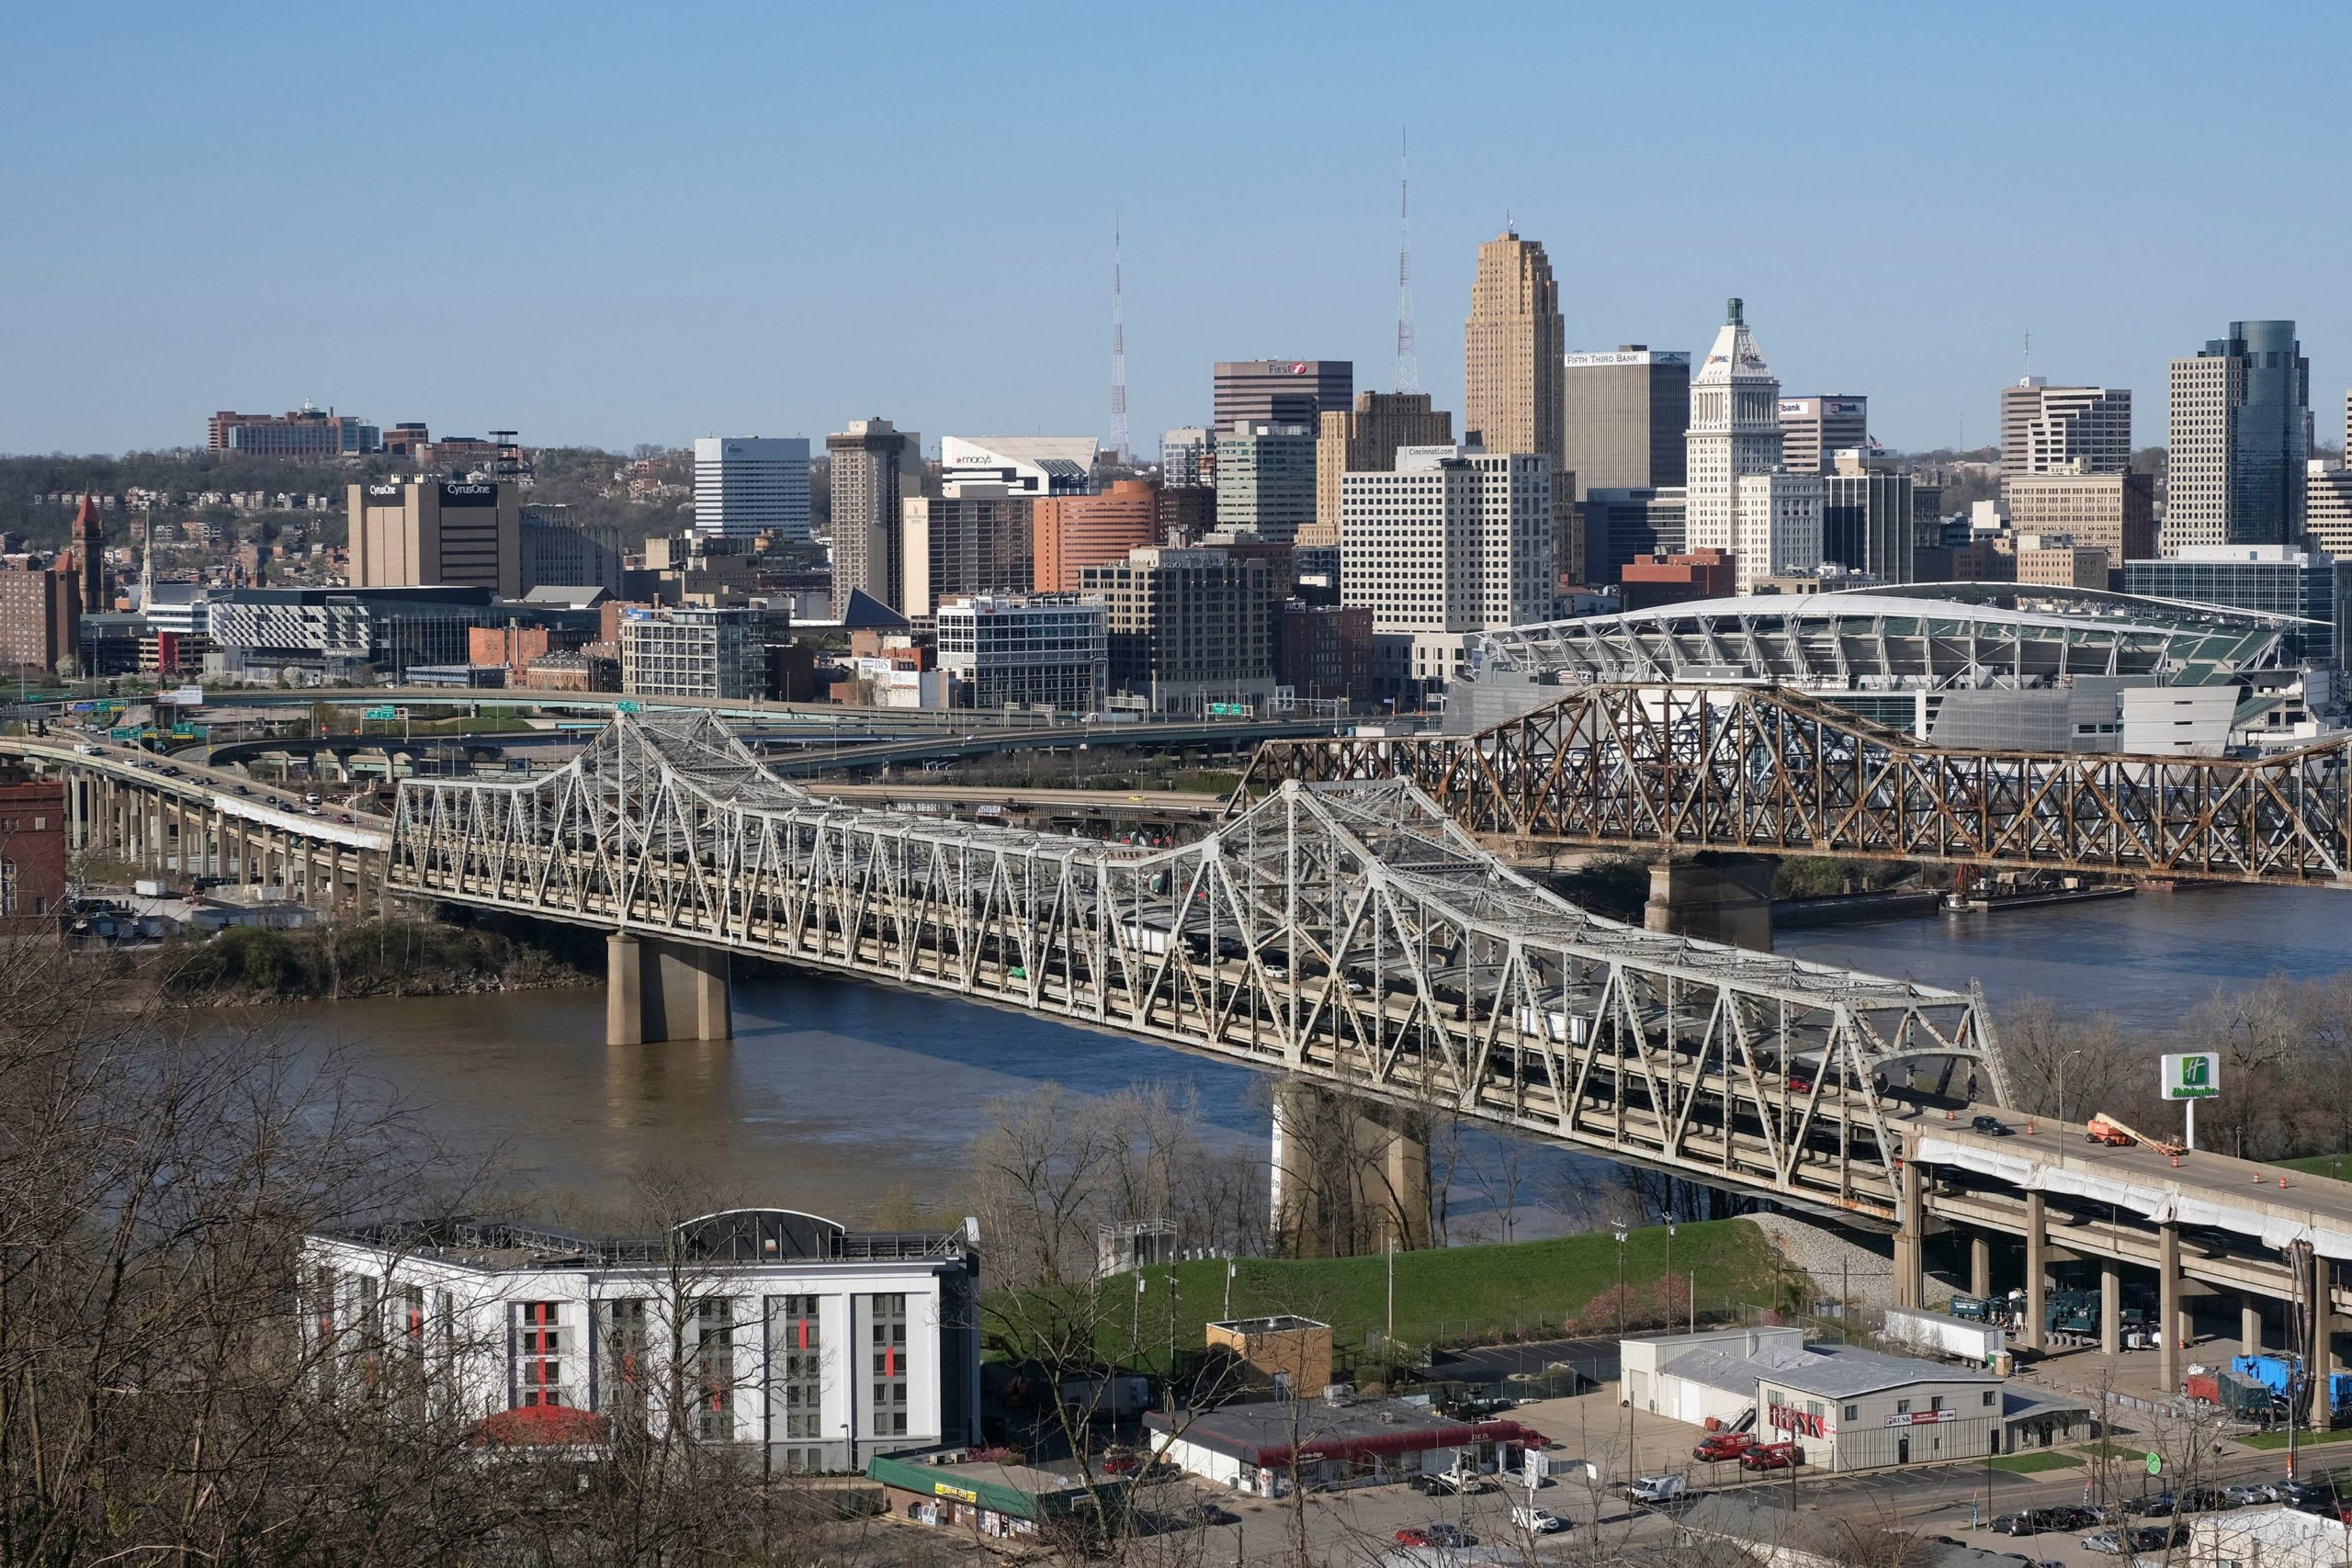 The Brent Spence Bridge spans the Ohio River on the Ohio-Kentucky border. President Biden has announced an ambitious $2 trillion infrastructure plan that would pump huge sums of money into improving the nations bridges, roads, public transportation, railways, ports and airports. (JEFF DEAN/AFP via Getty Images)